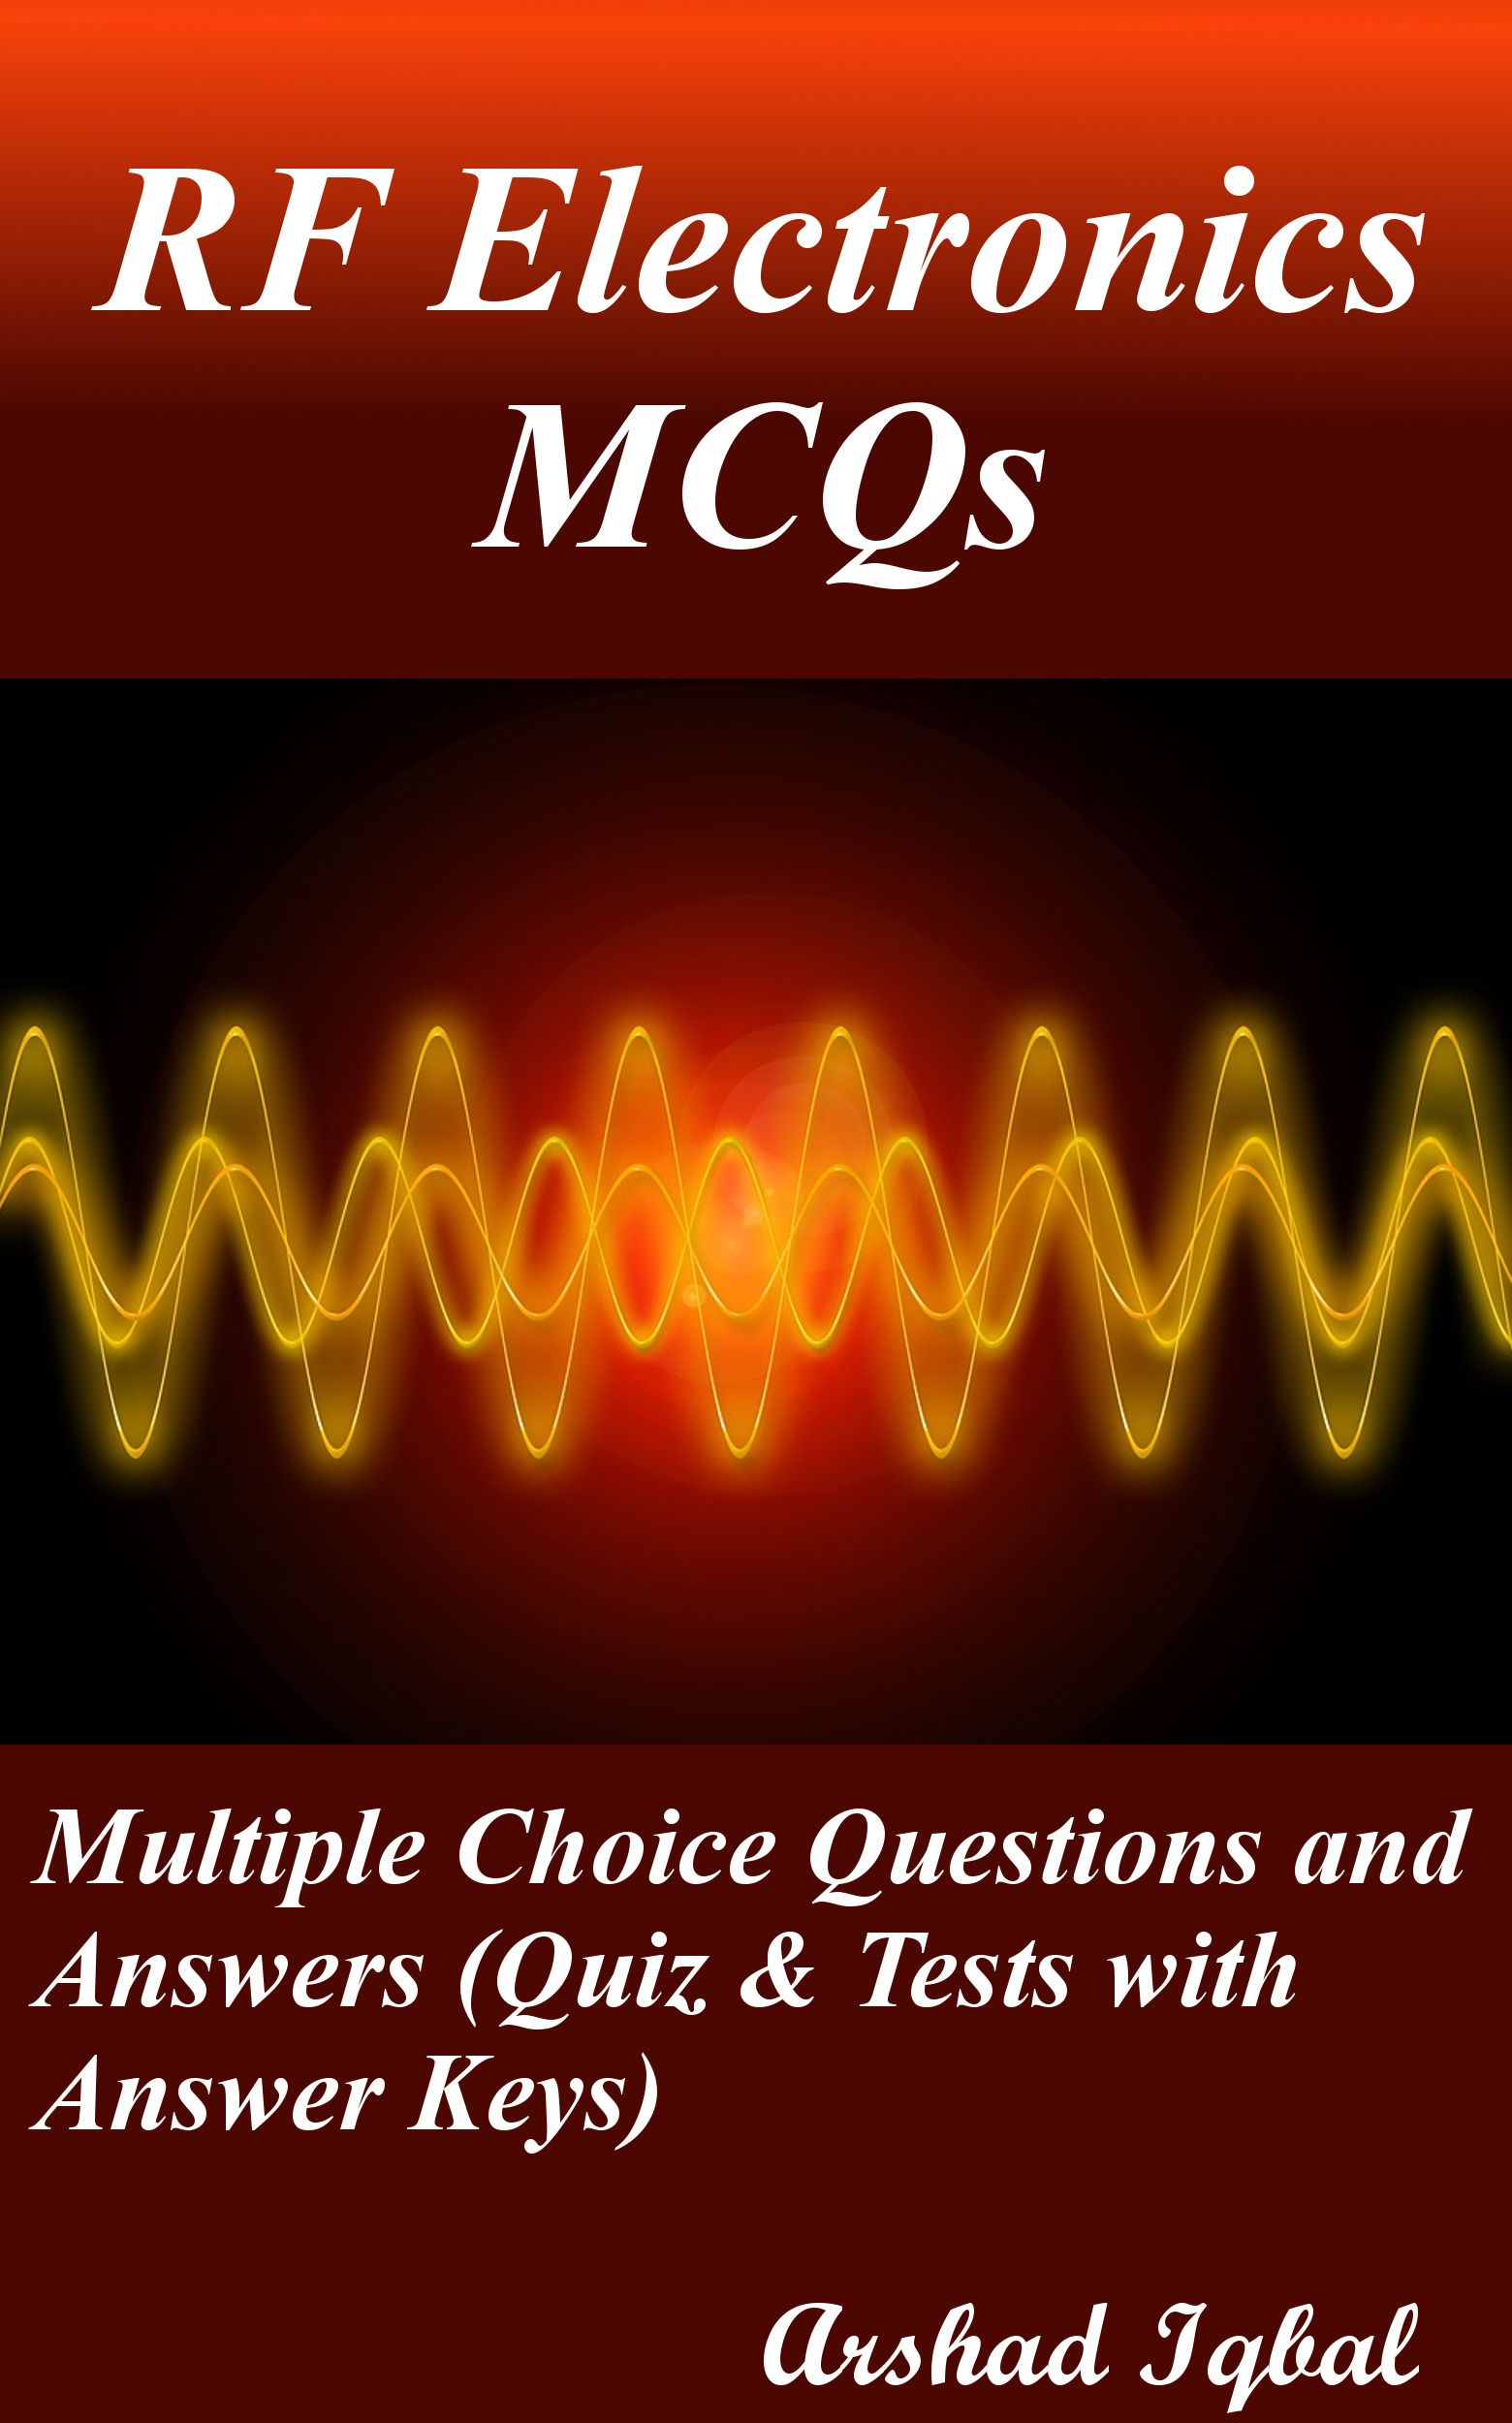 RF electronics MCQs has 80 multiple choice questions  RF